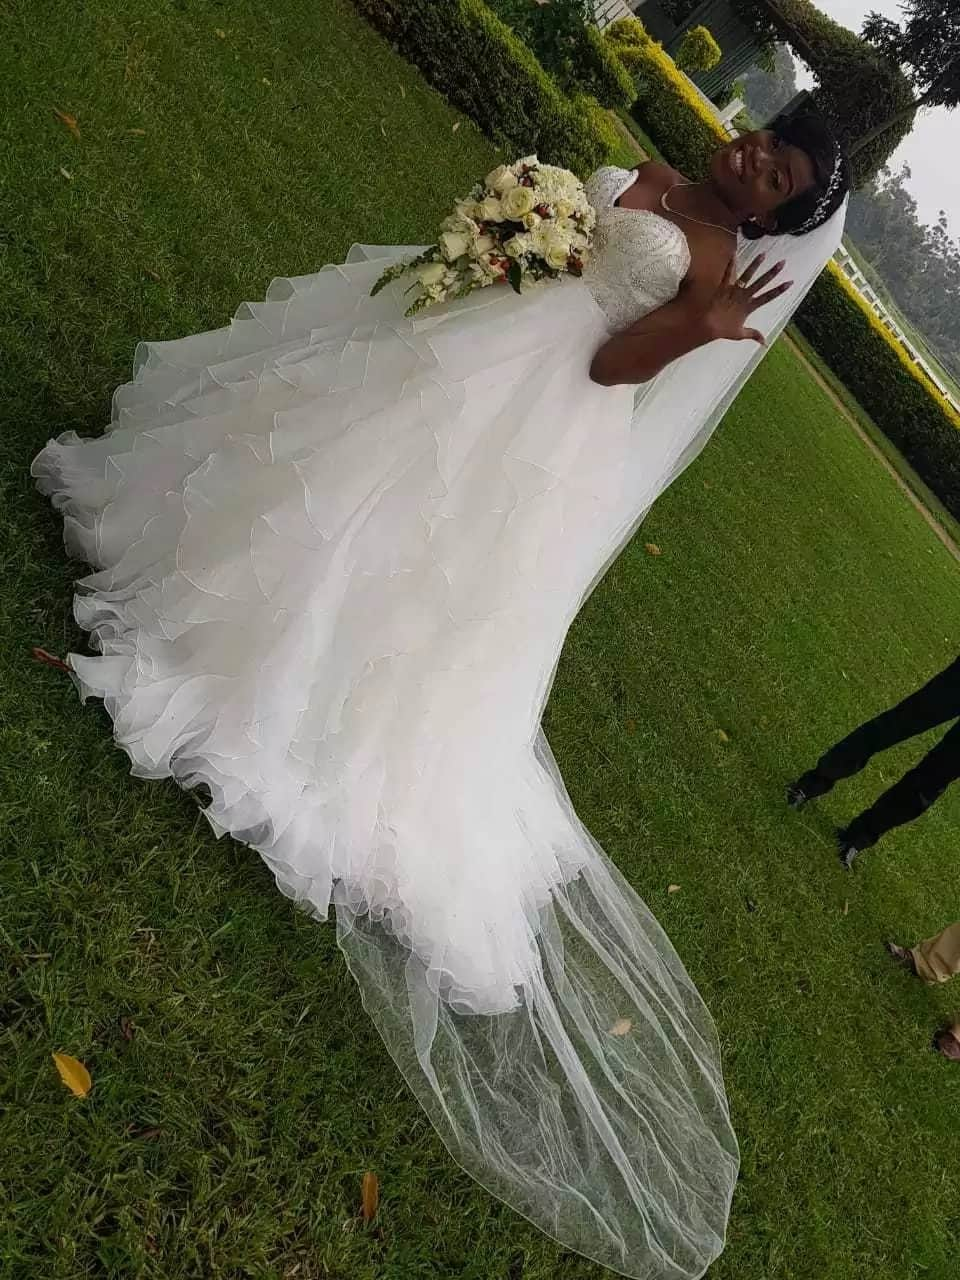 Daughter to Sofapaka millionaire owner says I do in colorful wedding